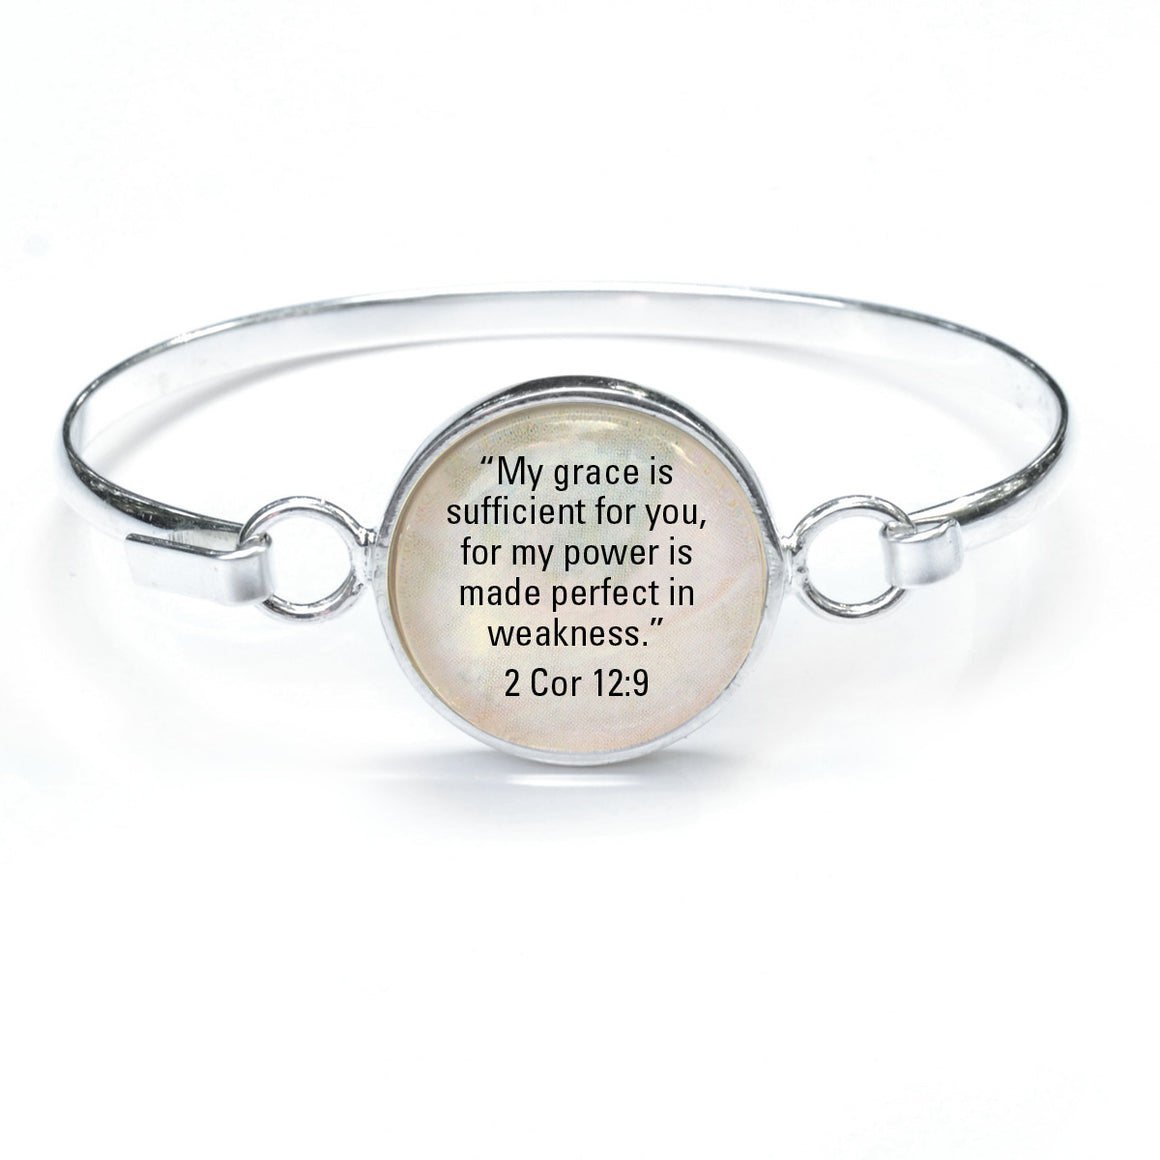 """My Grace is Sufficient"" 2 Corinthians 12:9 Silver-Plated Scripture Bangle Bracelet with Glass Charm - 3 Sizes"